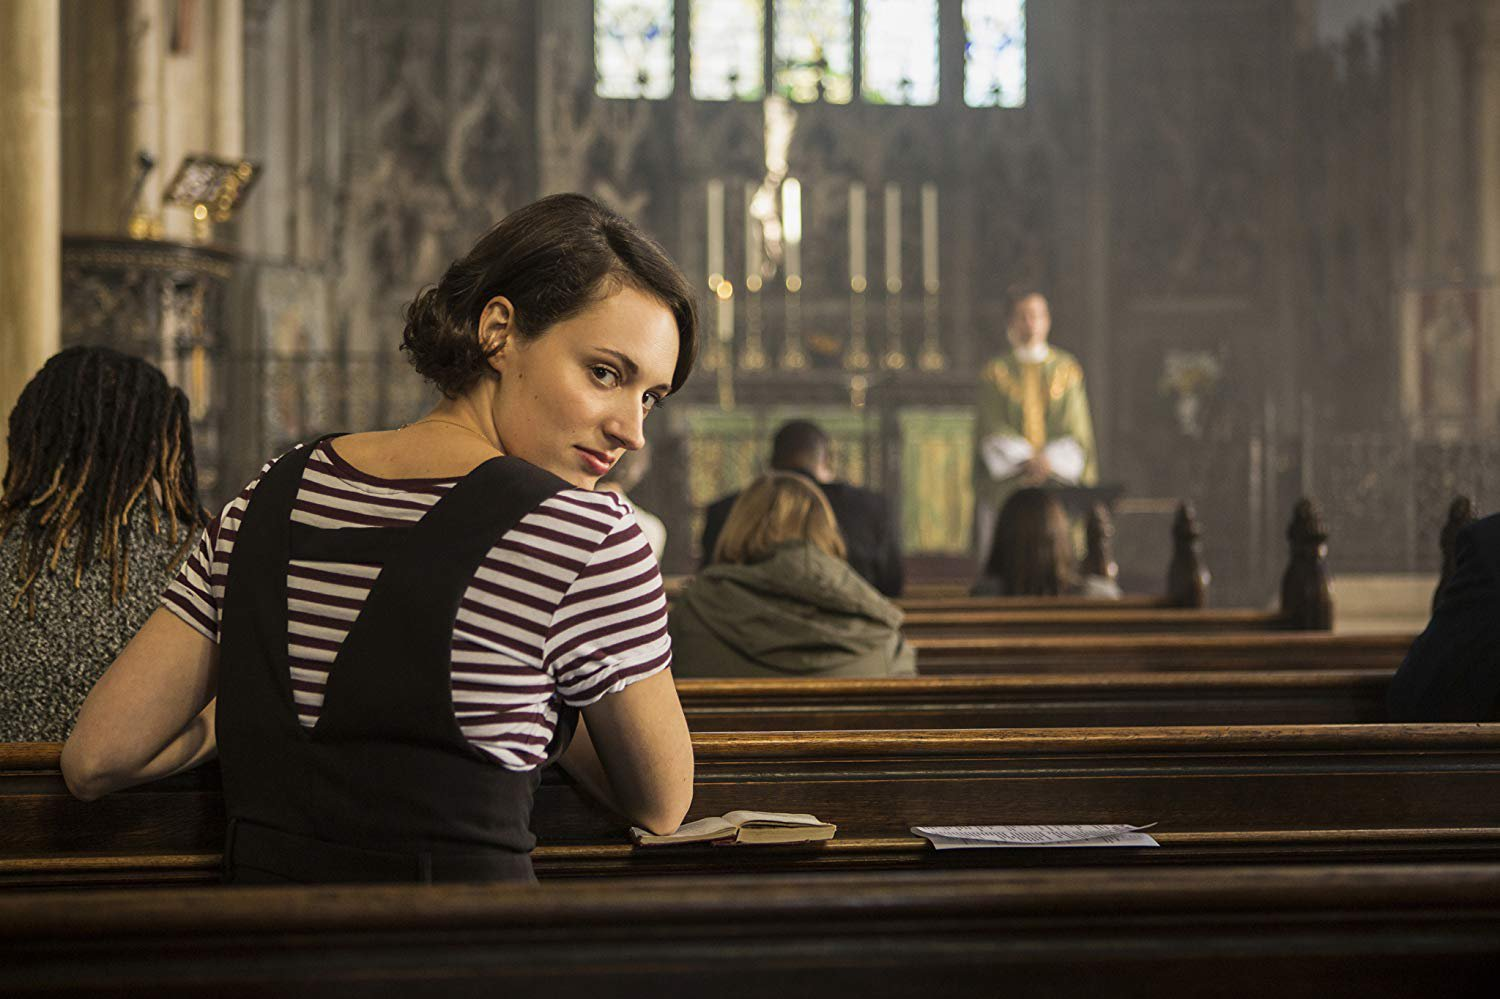 Fleabag image sitting in a church and praying.jpg